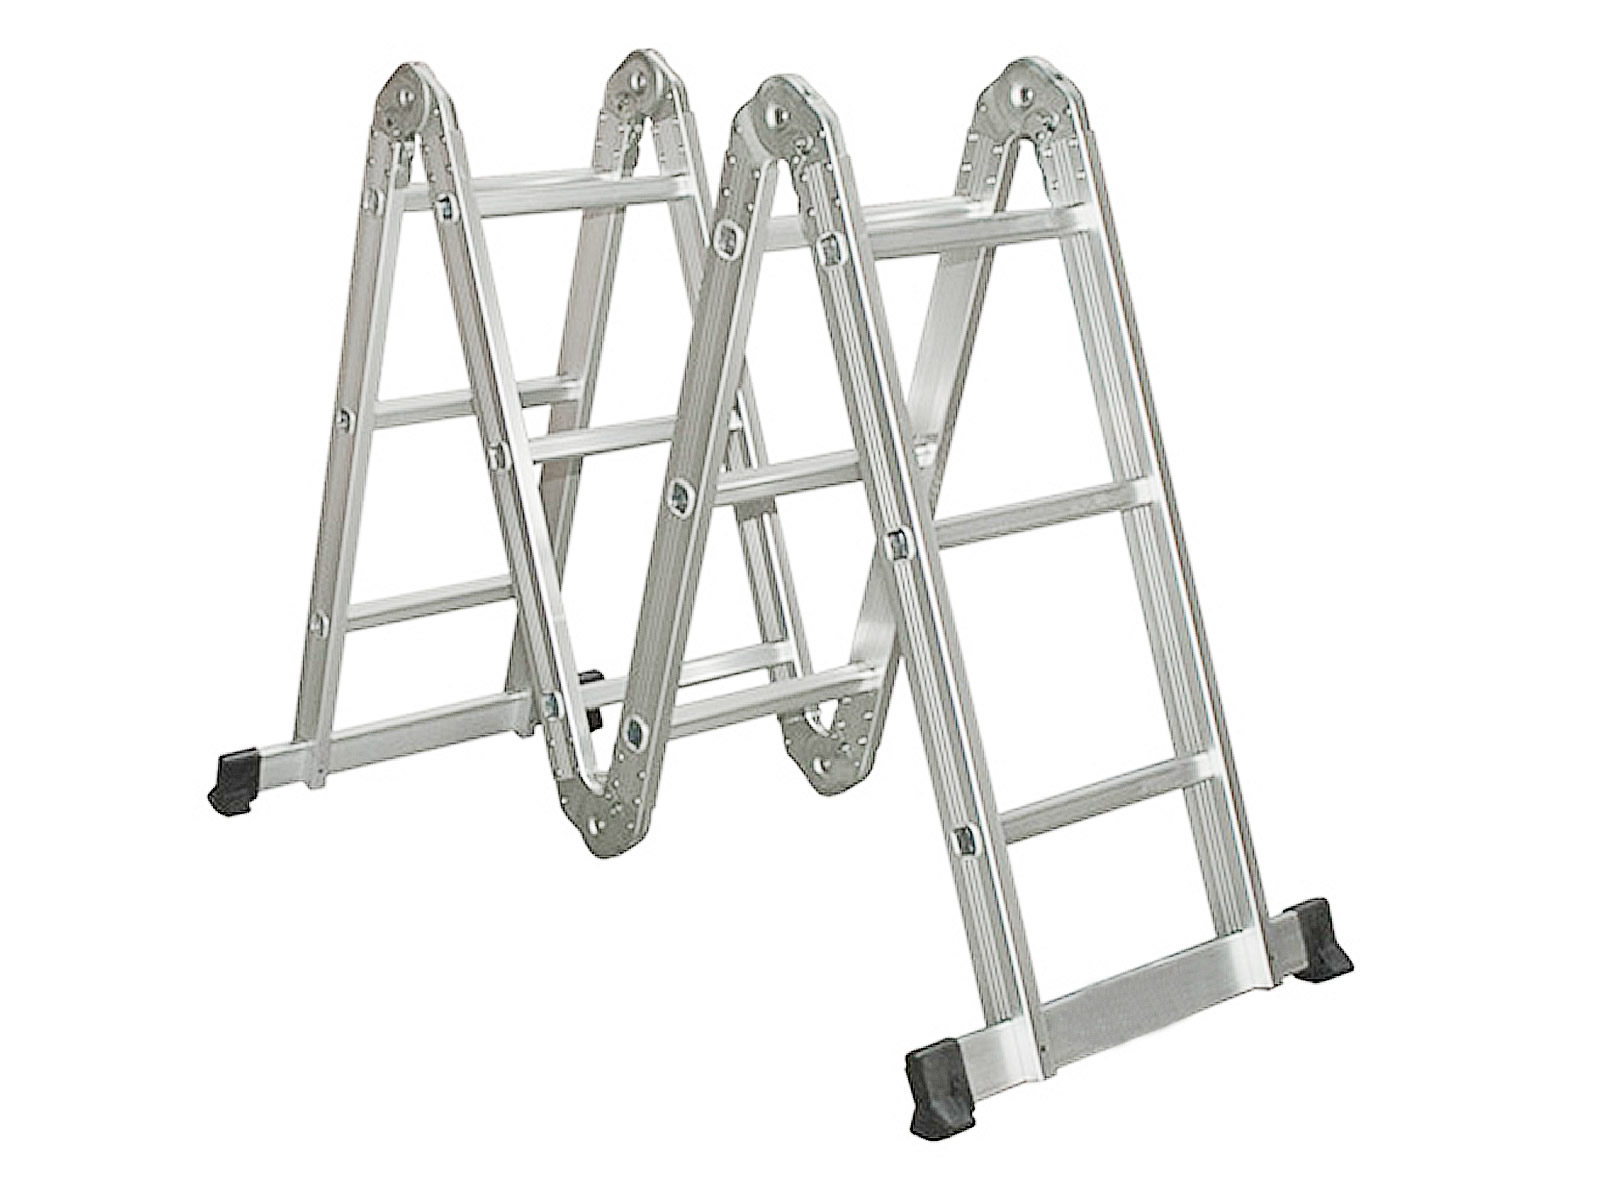 10.5-16.5FT Simple Aluminium Foldable Extension Ladder